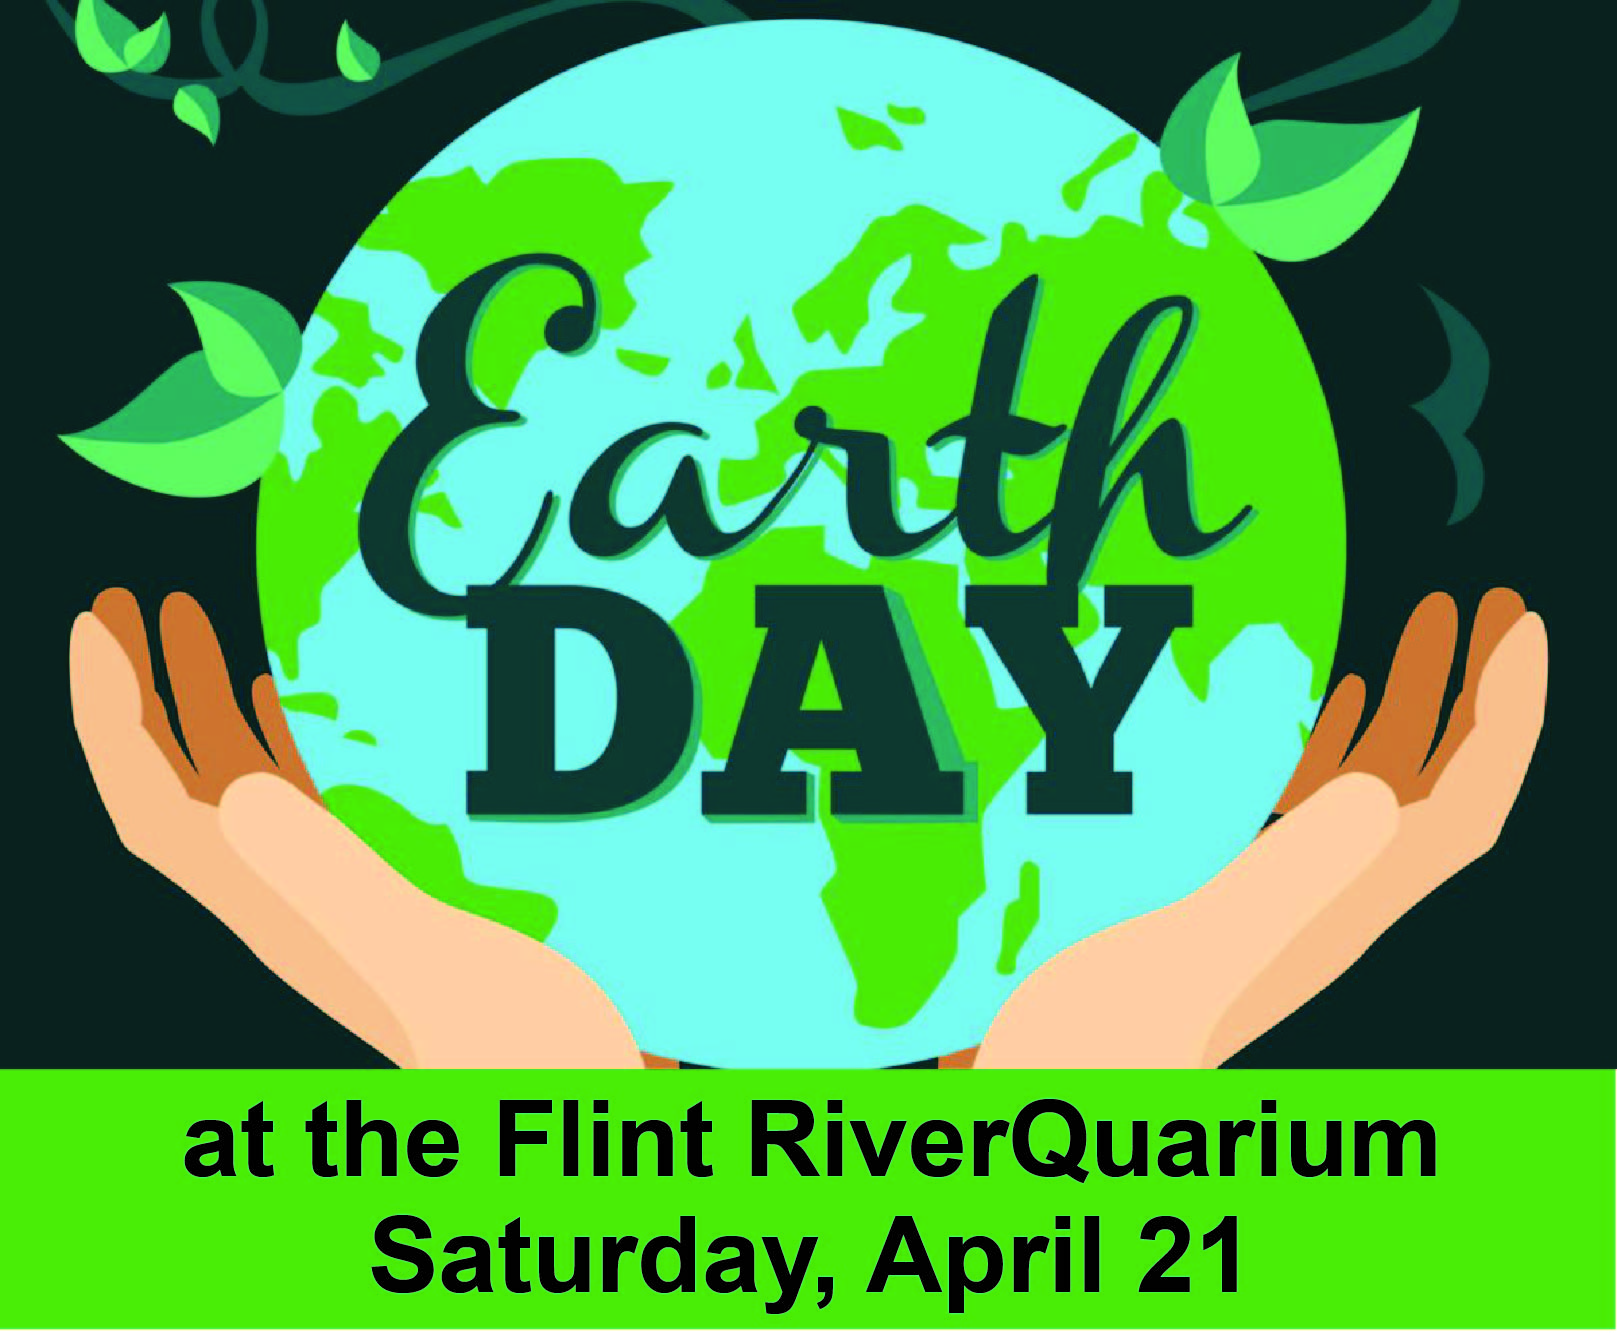 Earth Day at the Flint RiverQuarium